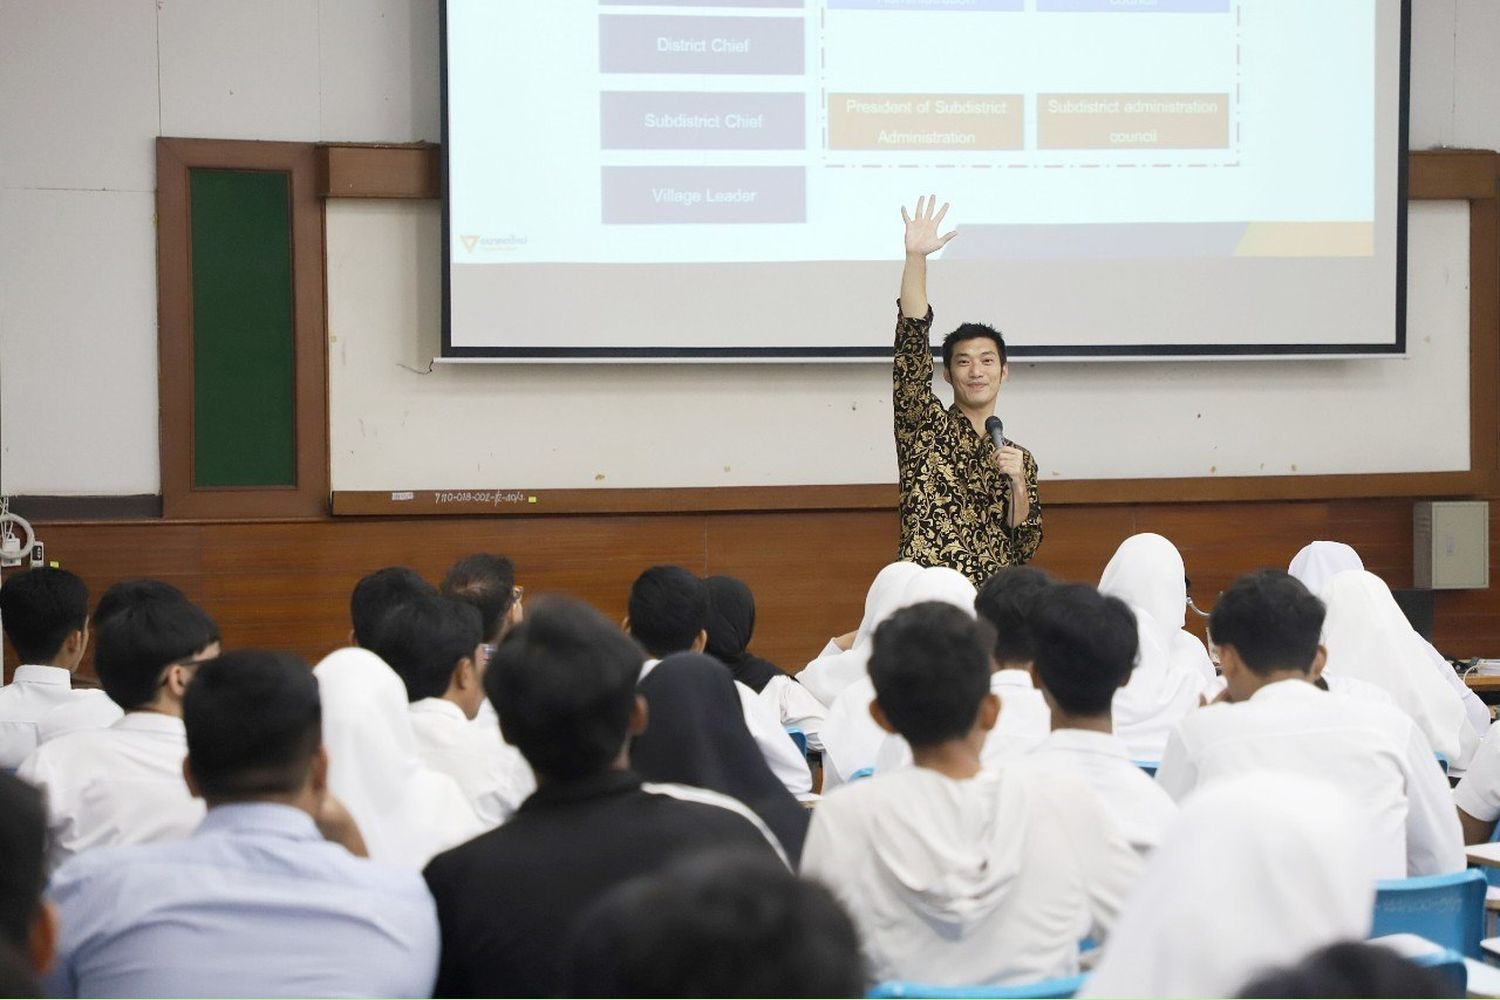 Future Forward Party leader Thanathorn Juangroongruangkit delivers a guest lecture at the Pattani campus of Prince of Songkla University on Sept 11. (Photo from Thanathorn Juangroongruangkit Facebook page)